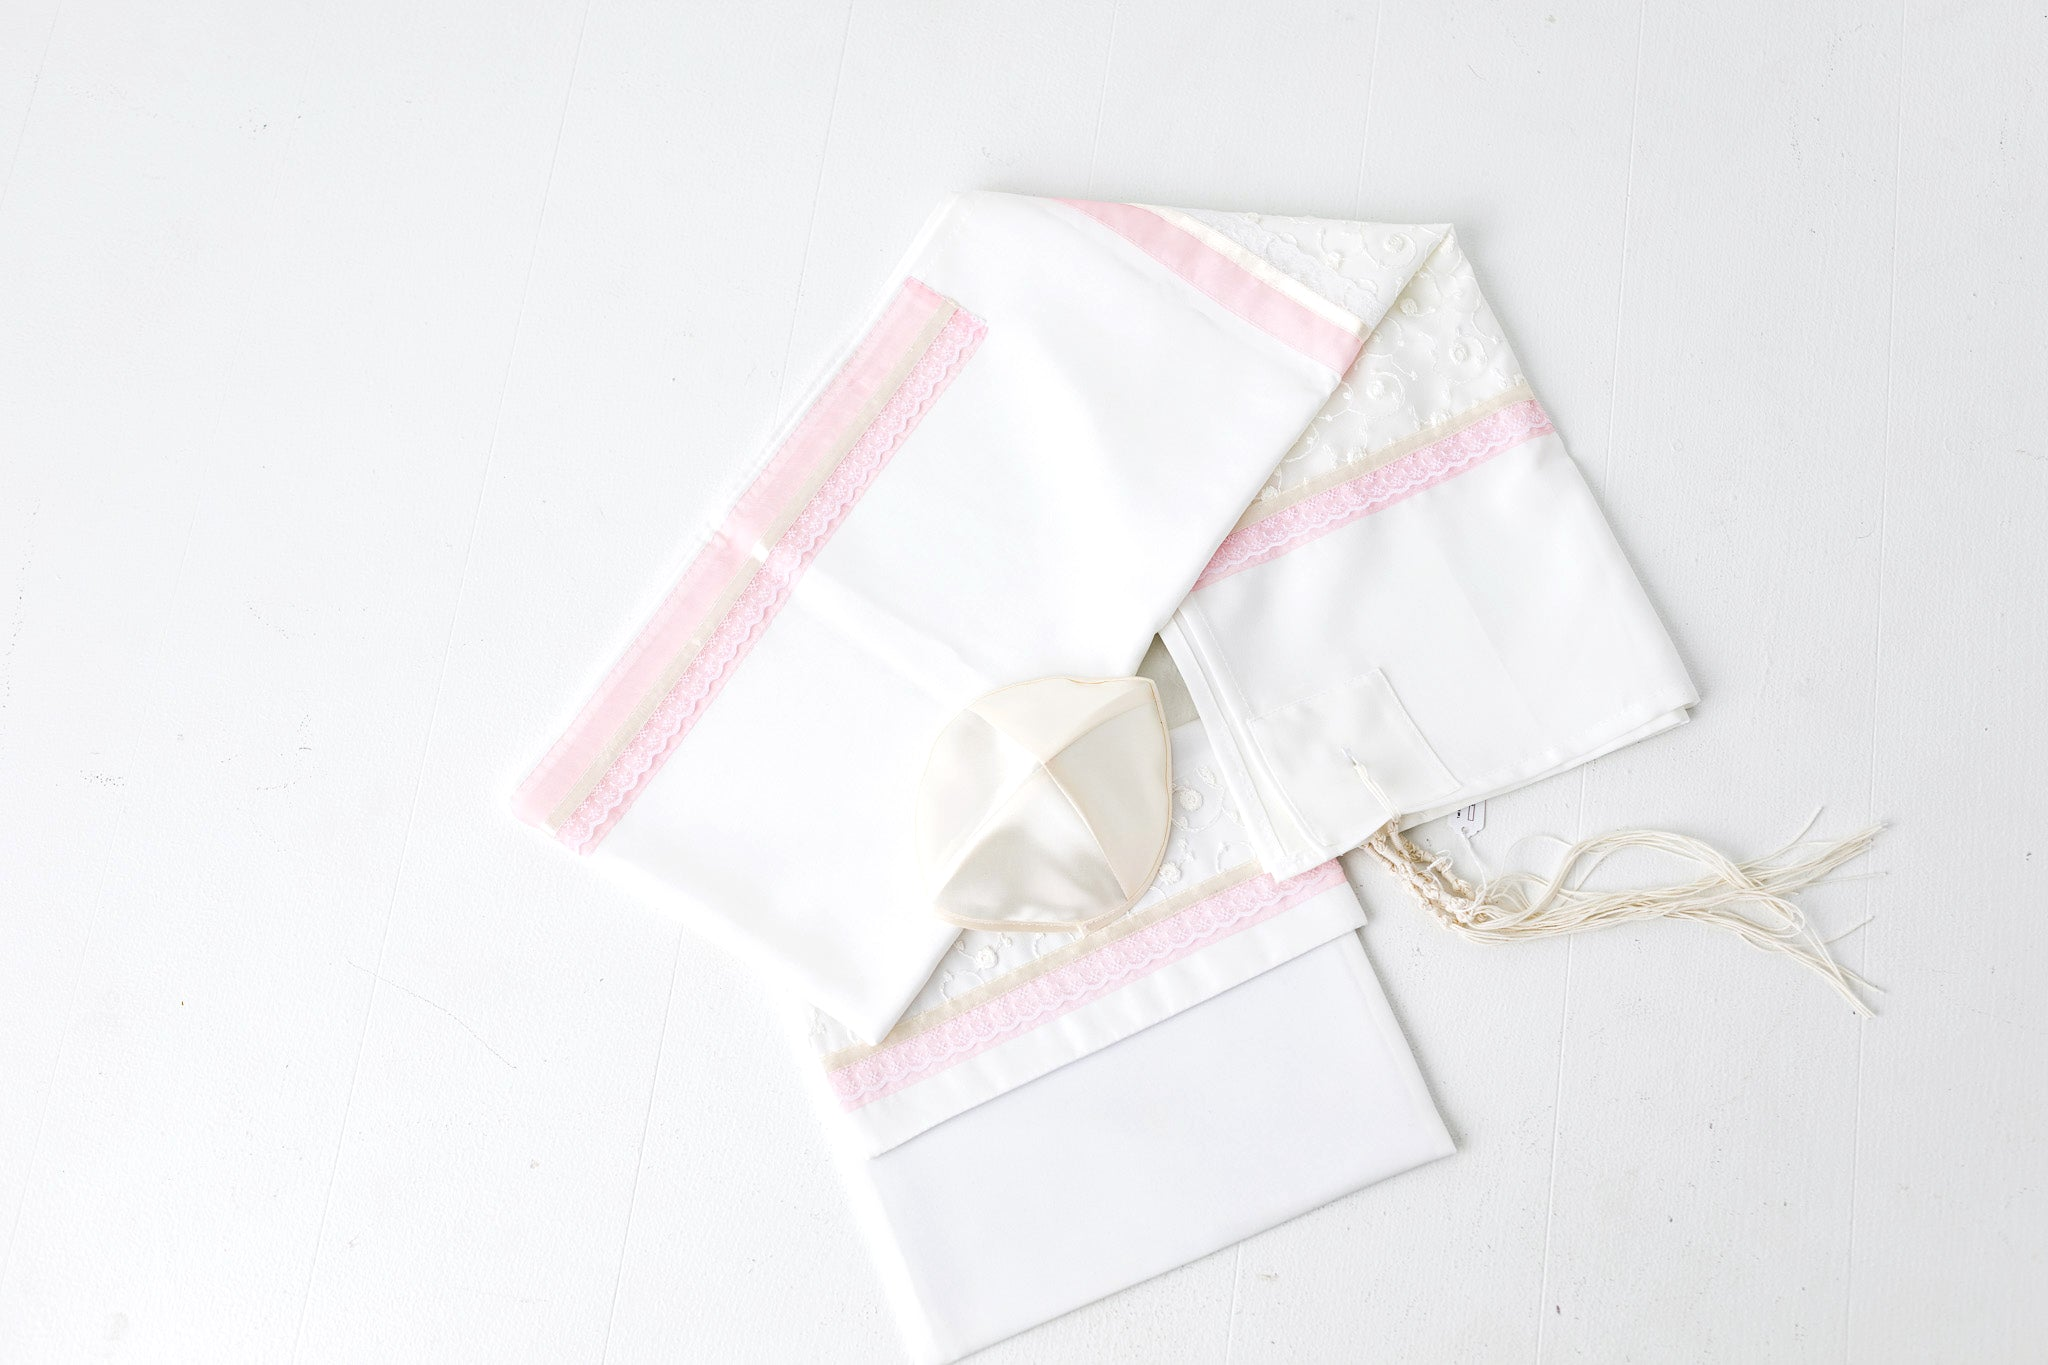 Tallit- Delicate pearl tallit with soft pink, delicate floral embroidery and lace